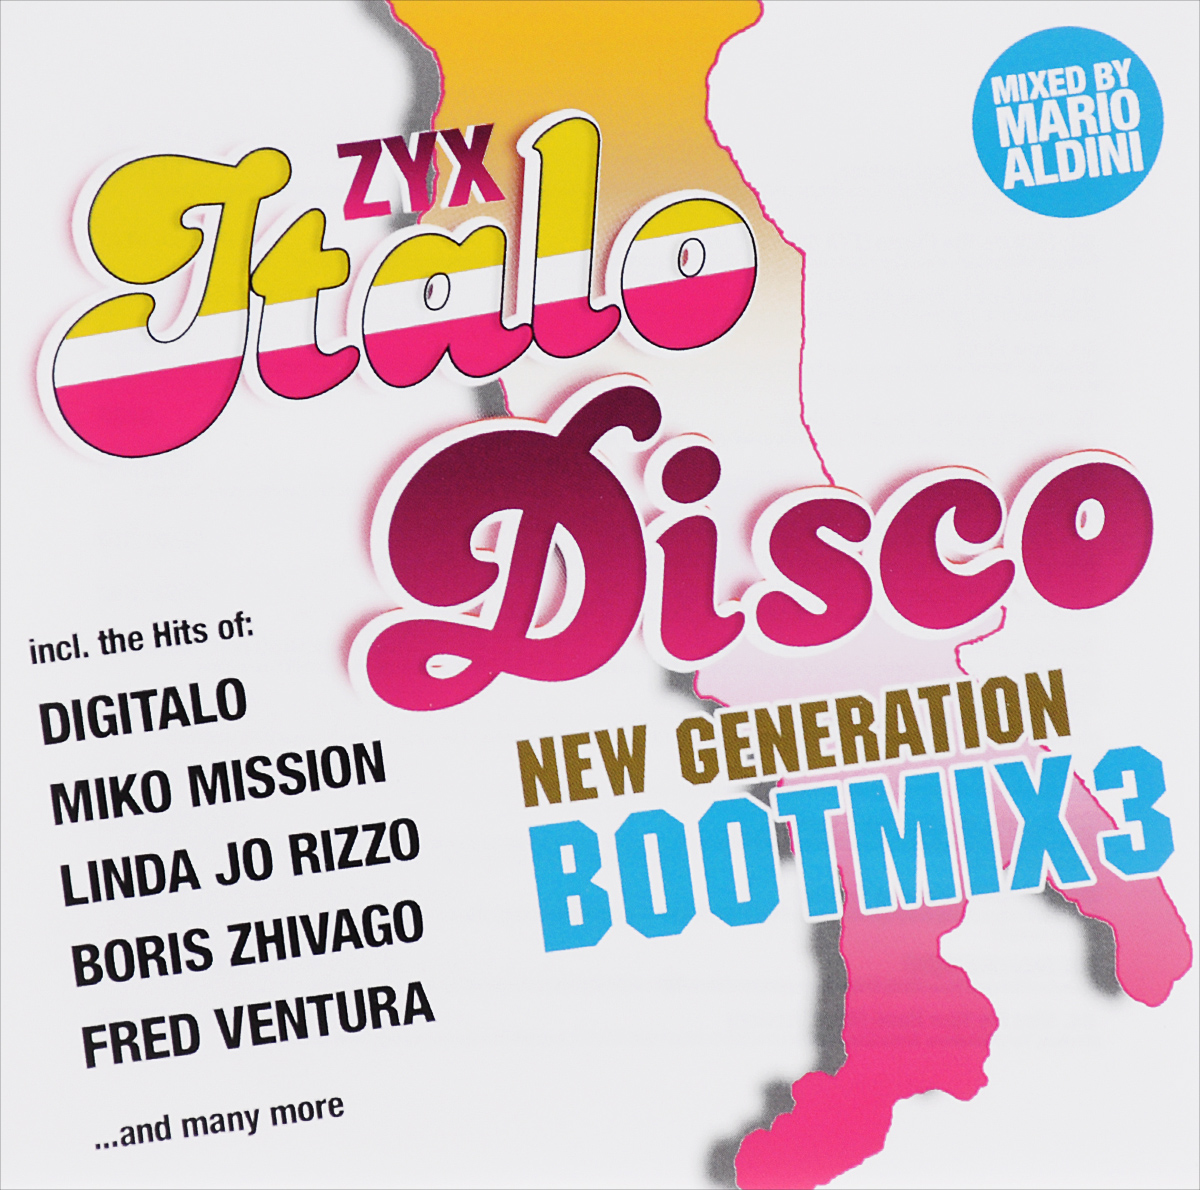 Helicon,Siberian Heat,Joey Mauro,Amaya,Remo Zito,Heaven42,The Sweeps,Фред Вентура,Digitalo,Линда Джо Риццо Zyx Italo Disco New Generation Bootmix 3 roxanne джо локвуд cyber people hypnosis tommy candy belle сюзанна милс italo disco collection 16 3 cd page 9